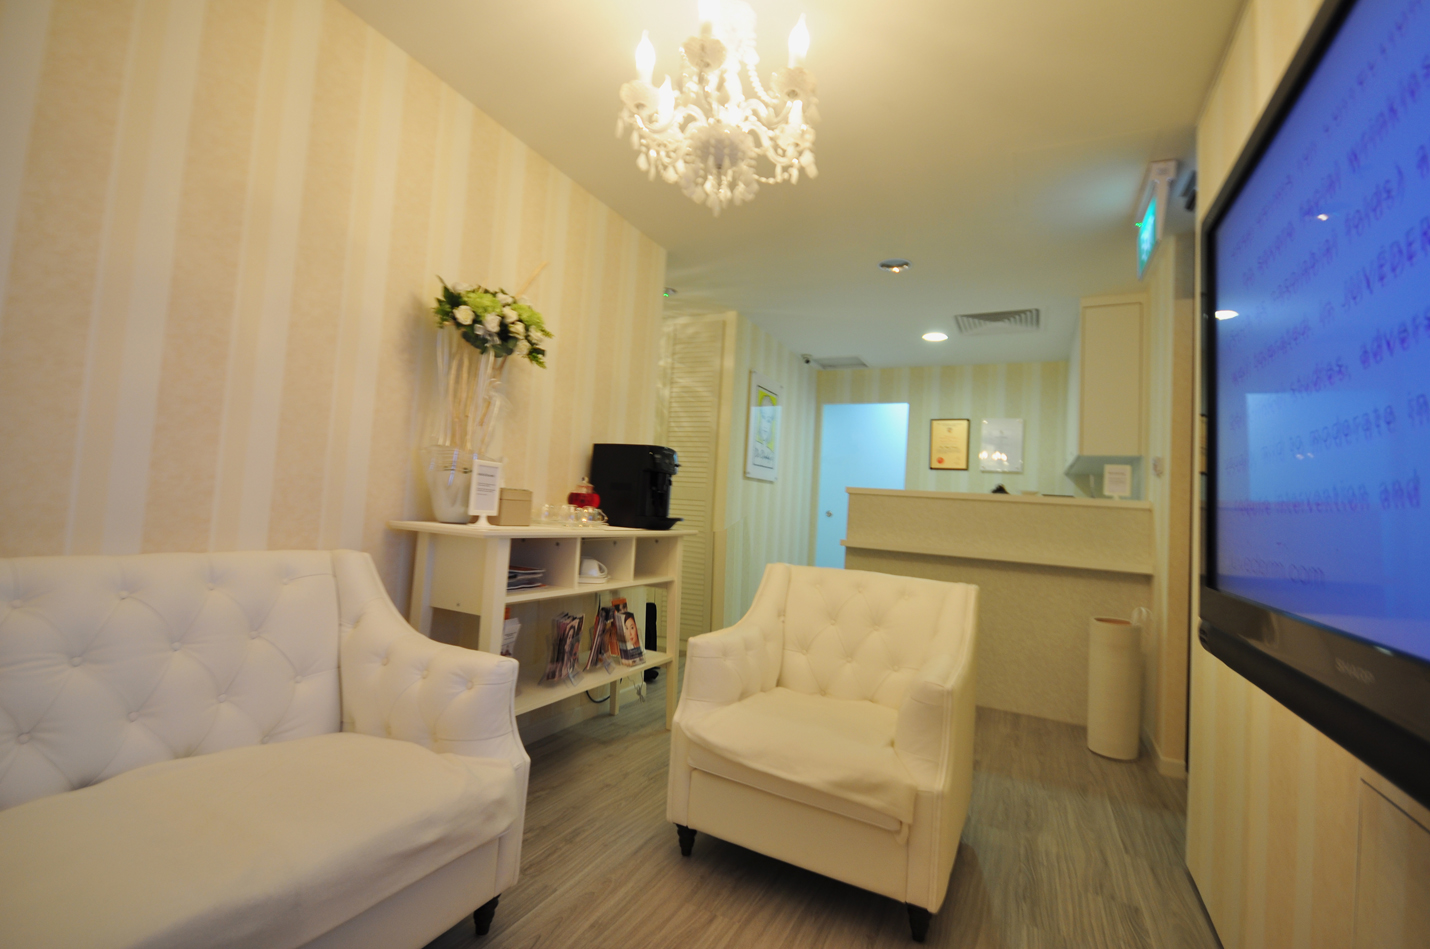 Dr Cindy's Medical Aesthetic Orchard